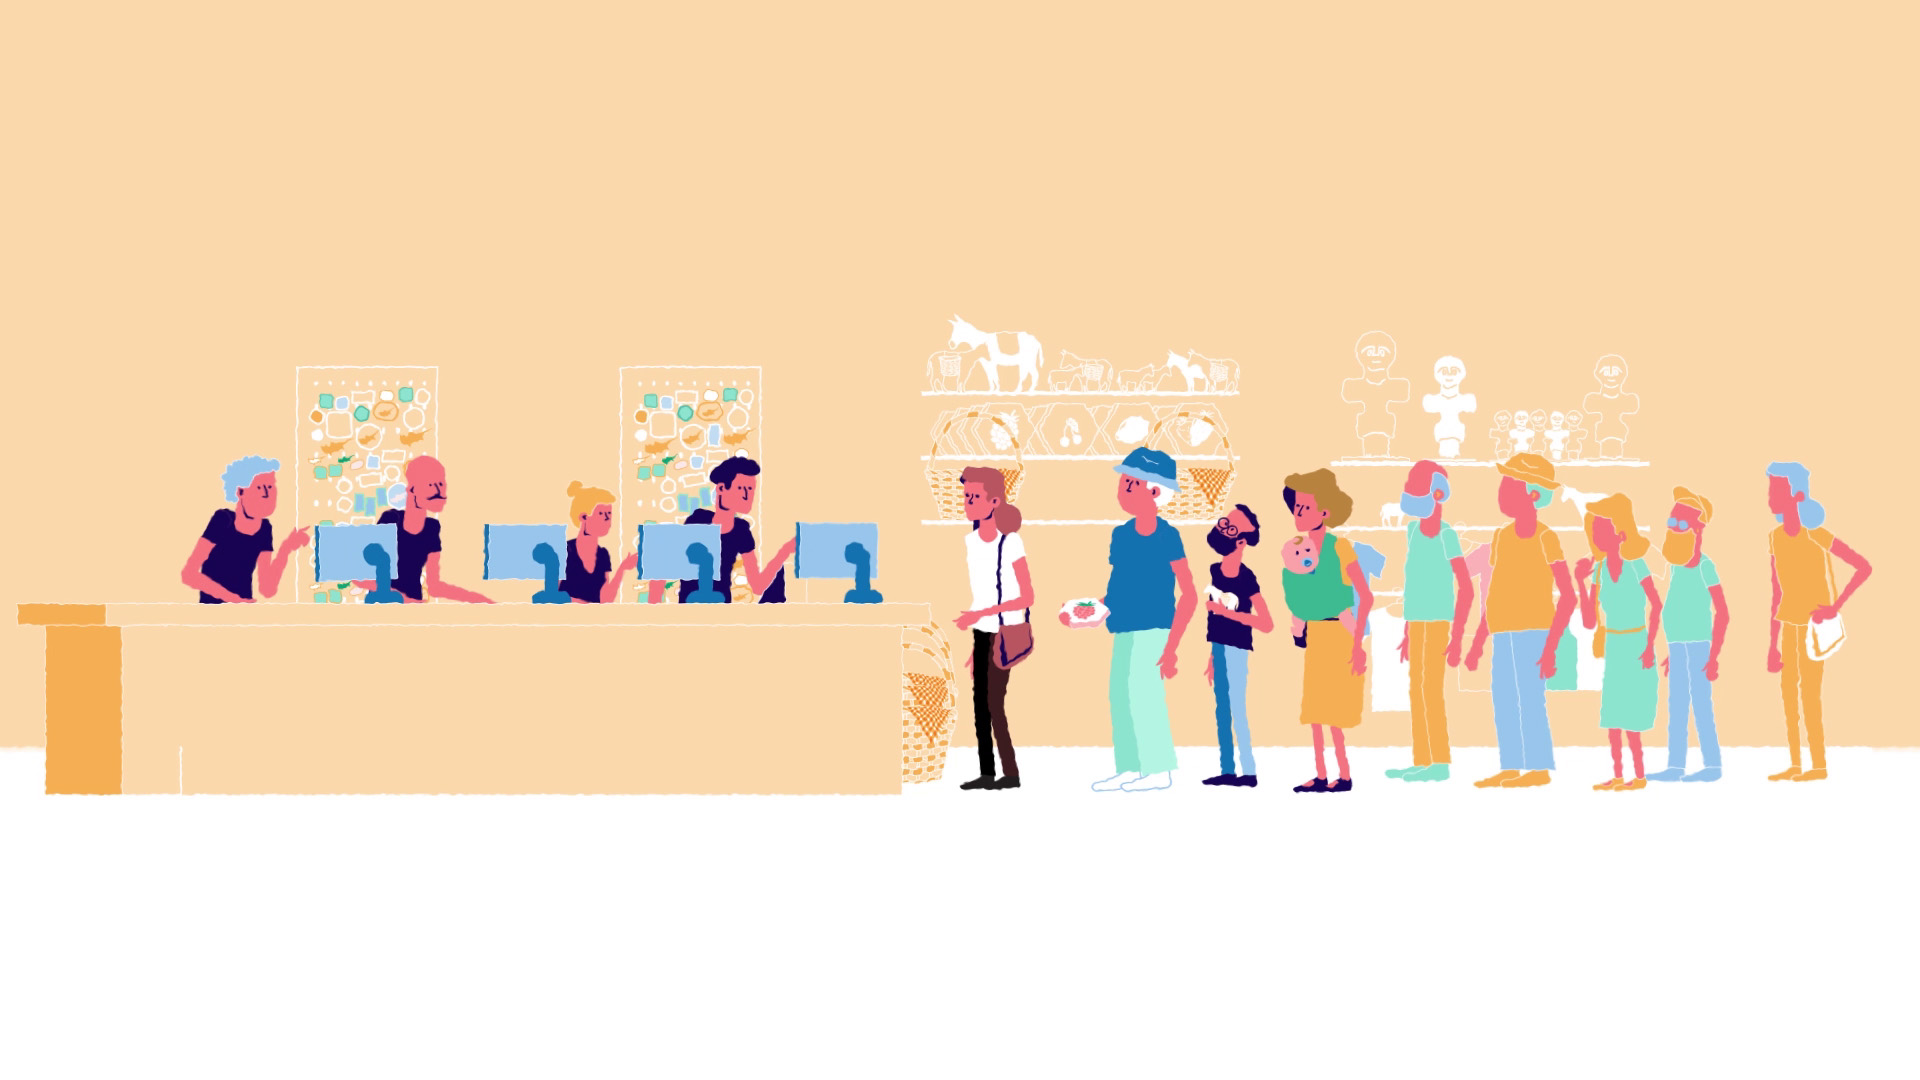 Prio_Cyprus Peace Dividend_oh animations_research_communication_media_motion graphics_unite